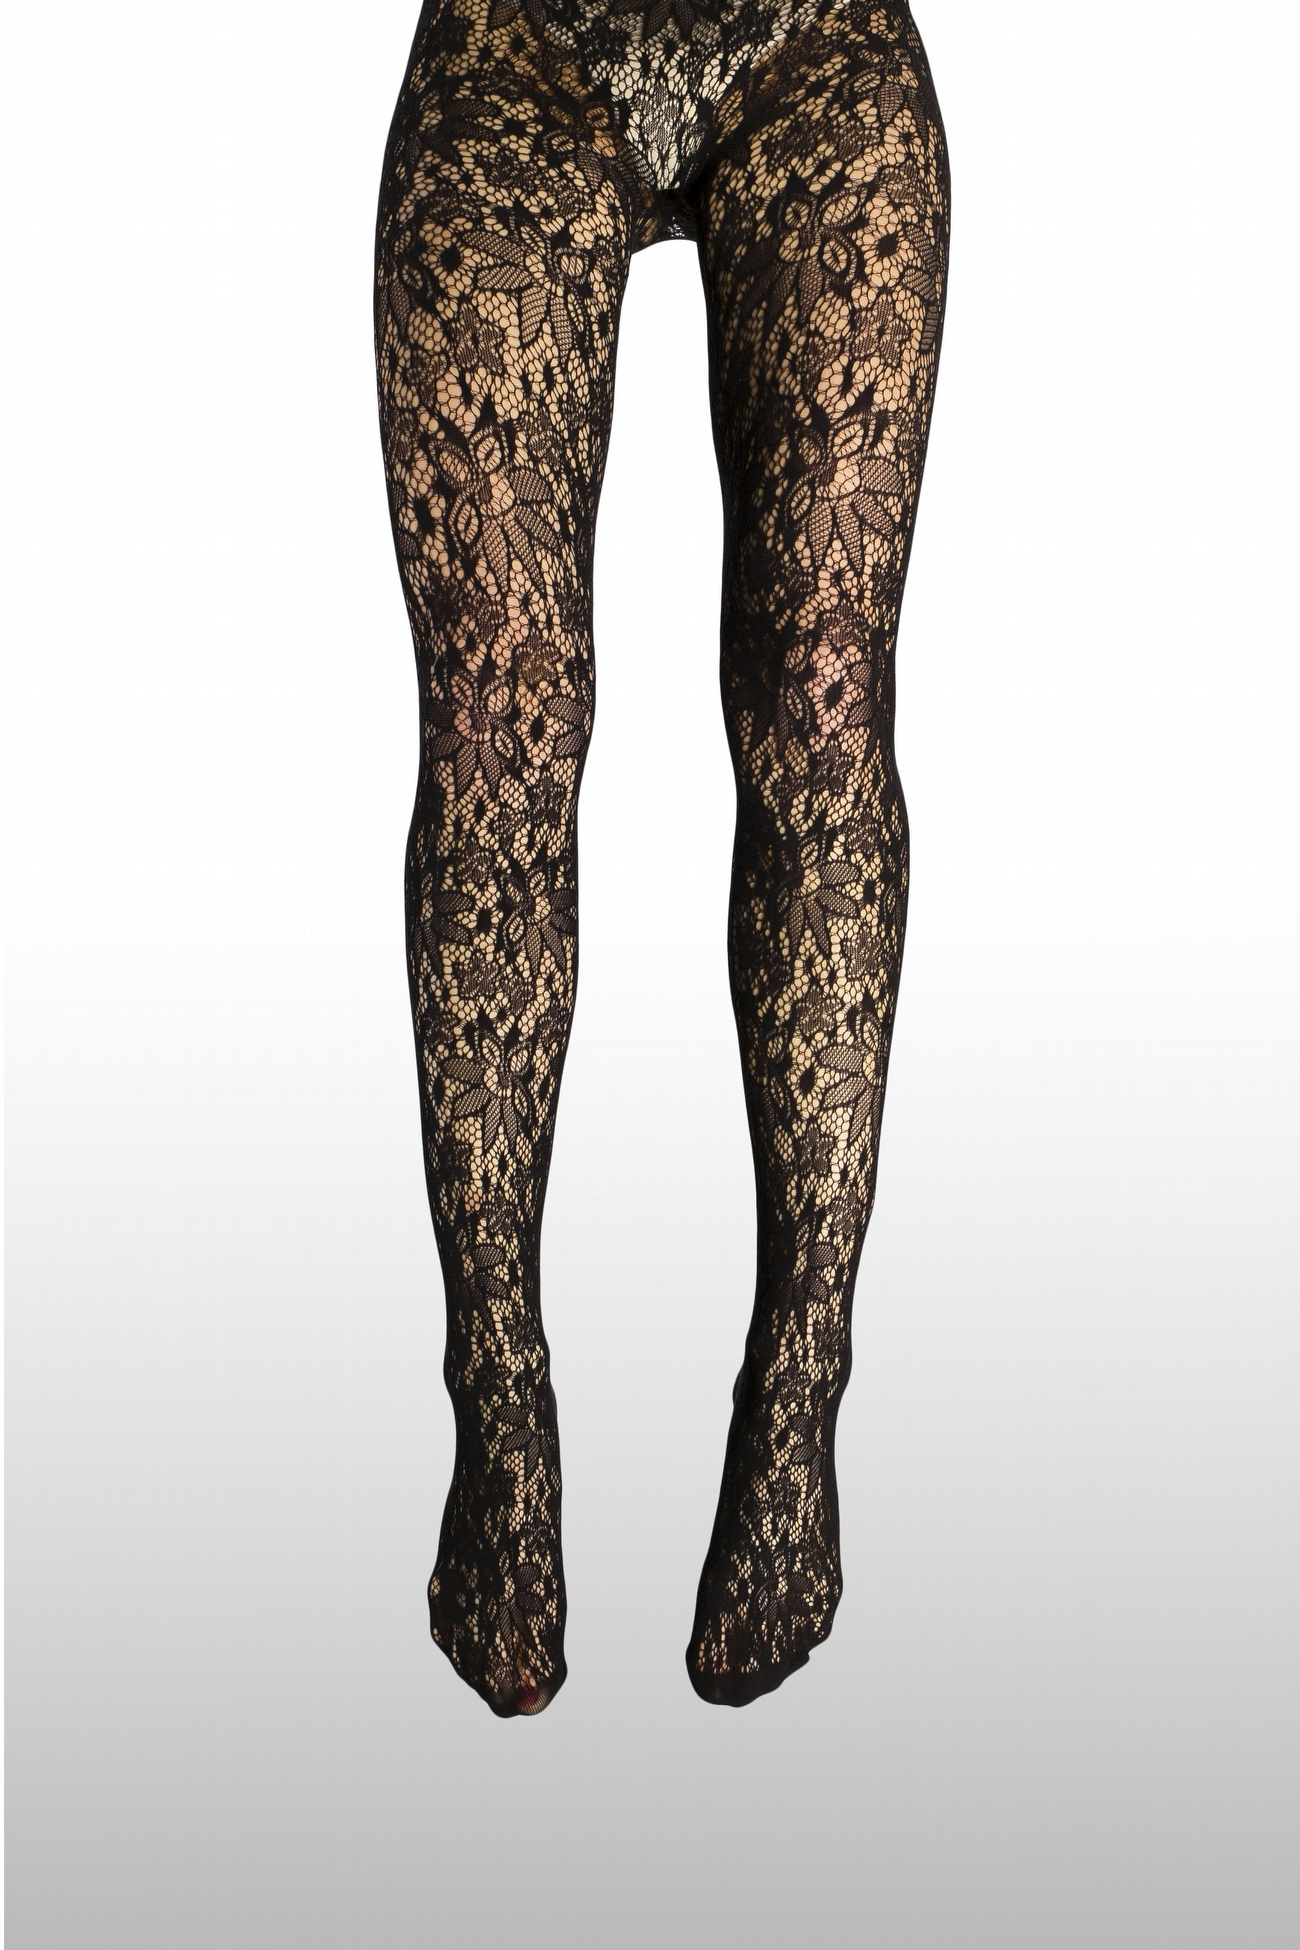 Tights Pantyhose Online Shop 82